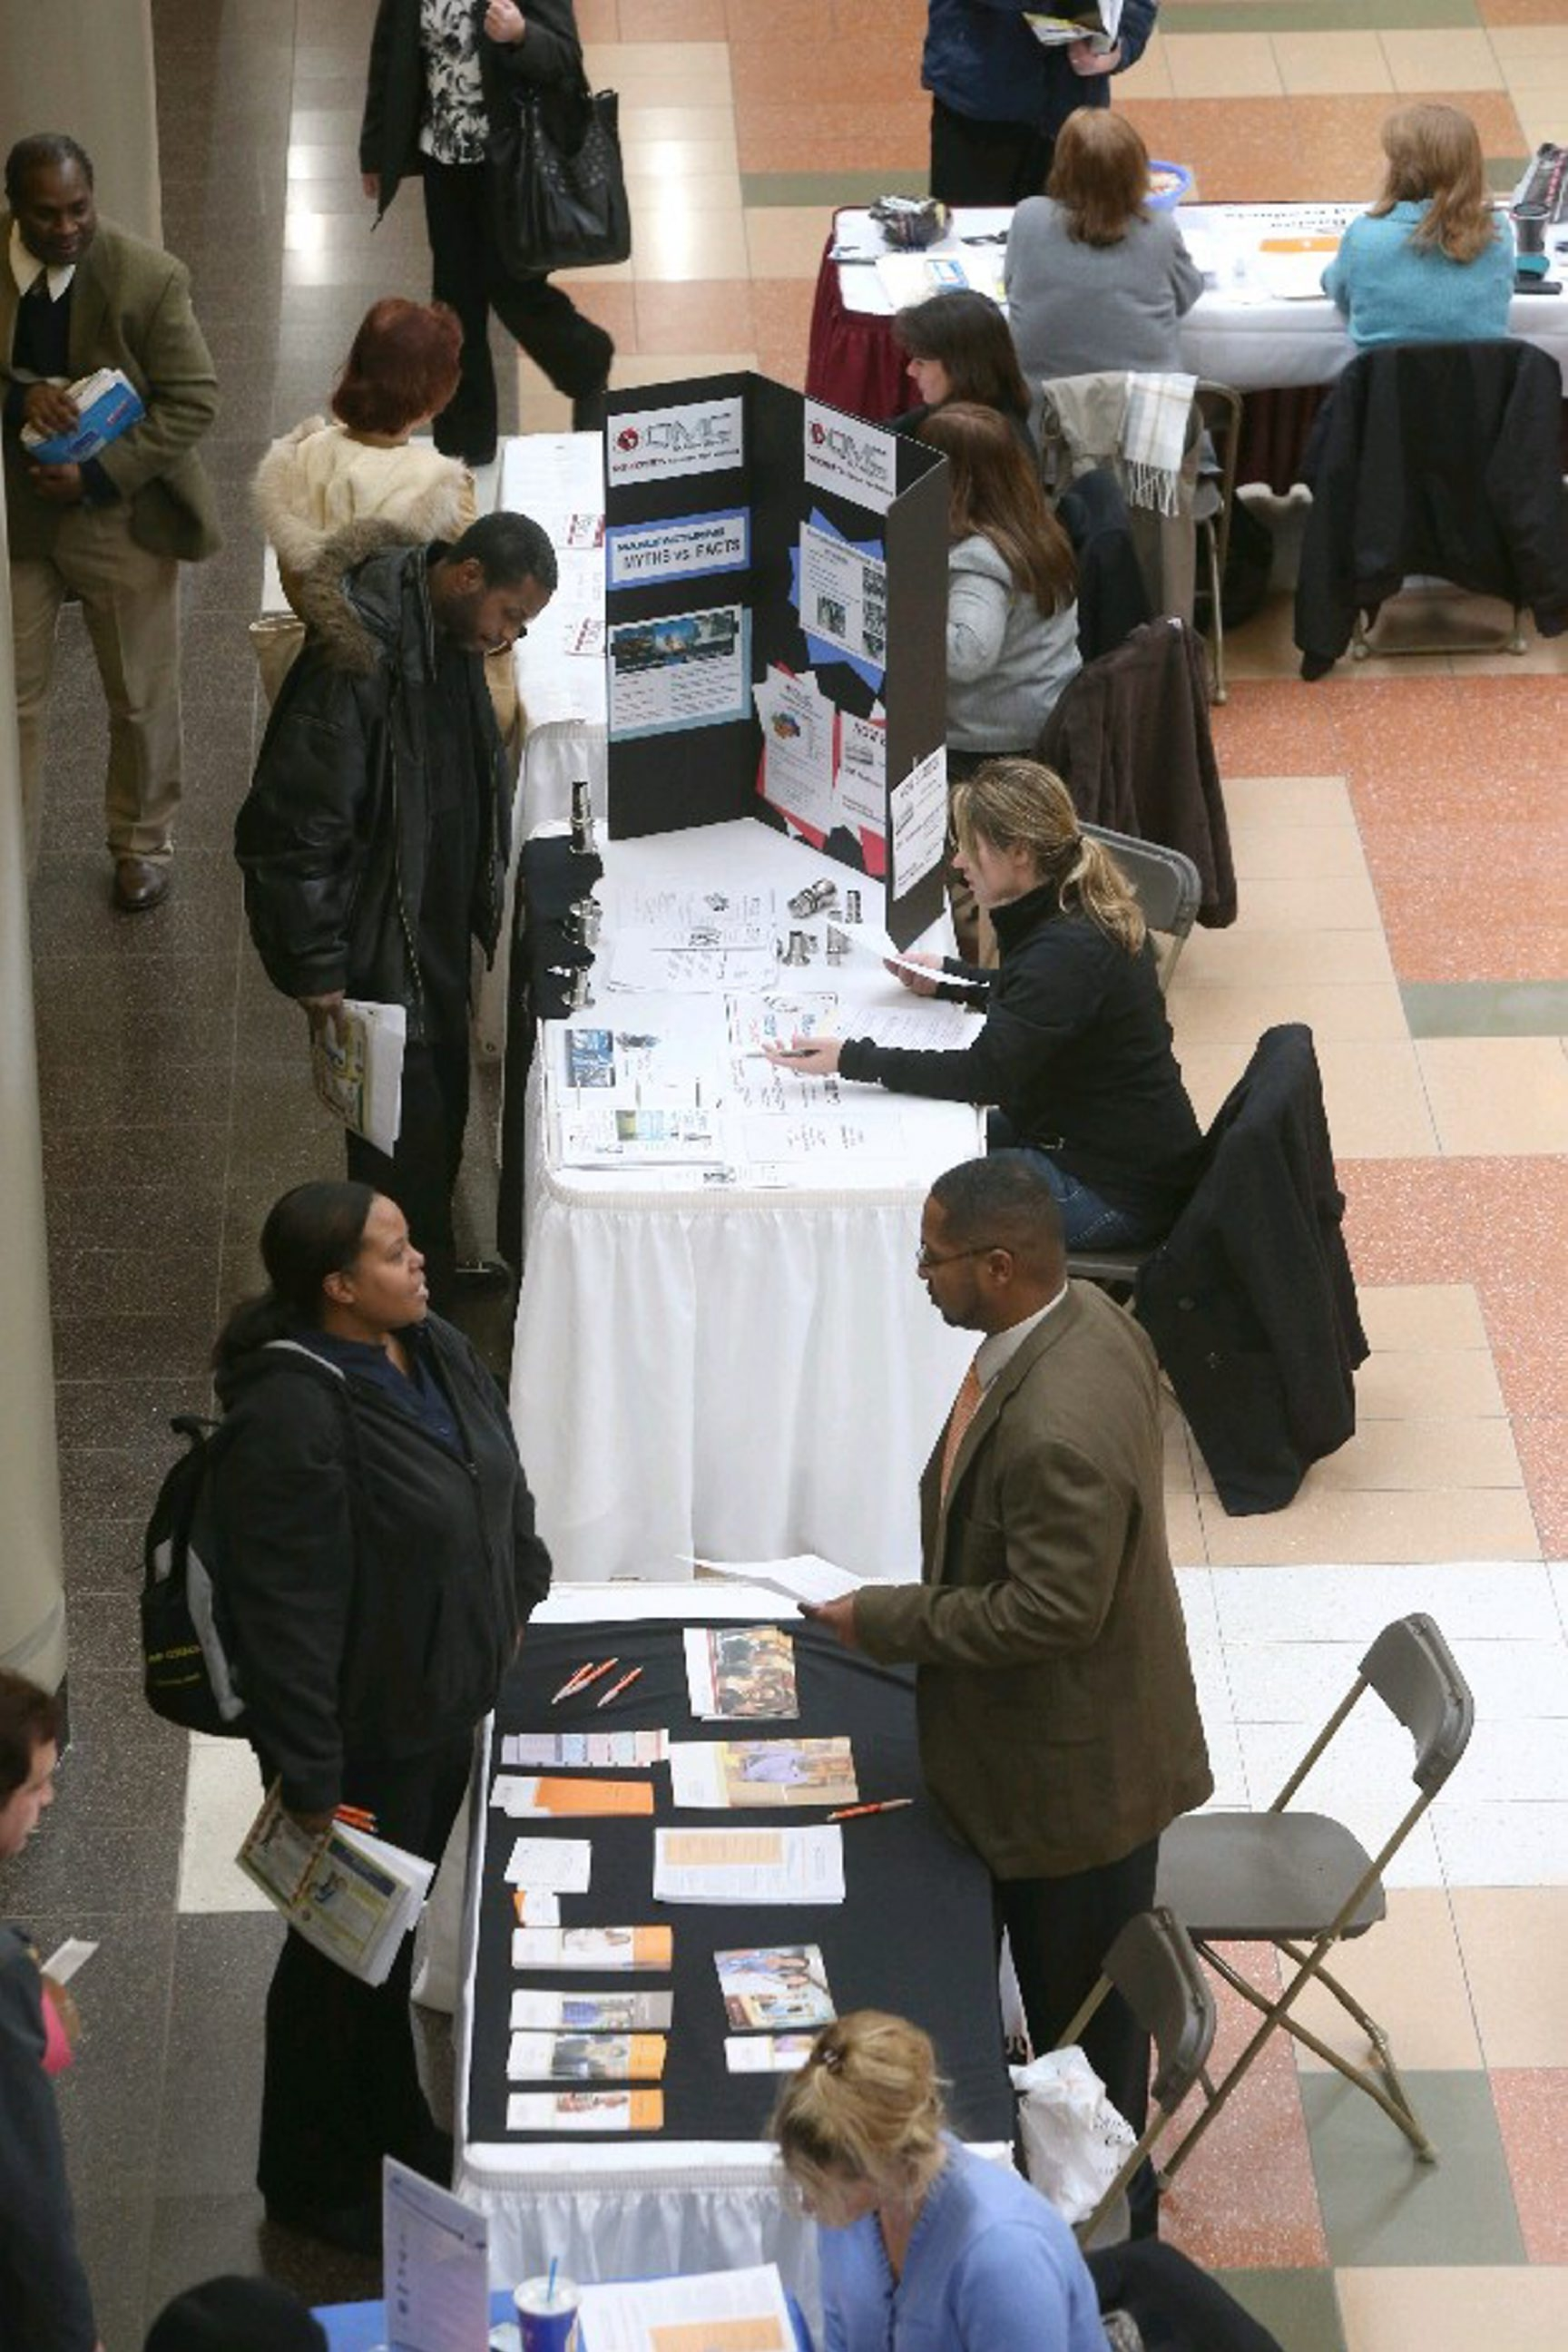 Hundreds of job seekers attended a job fair at the Walden Galleria sponsored by the Cheektowaga Chamber of Commerce.